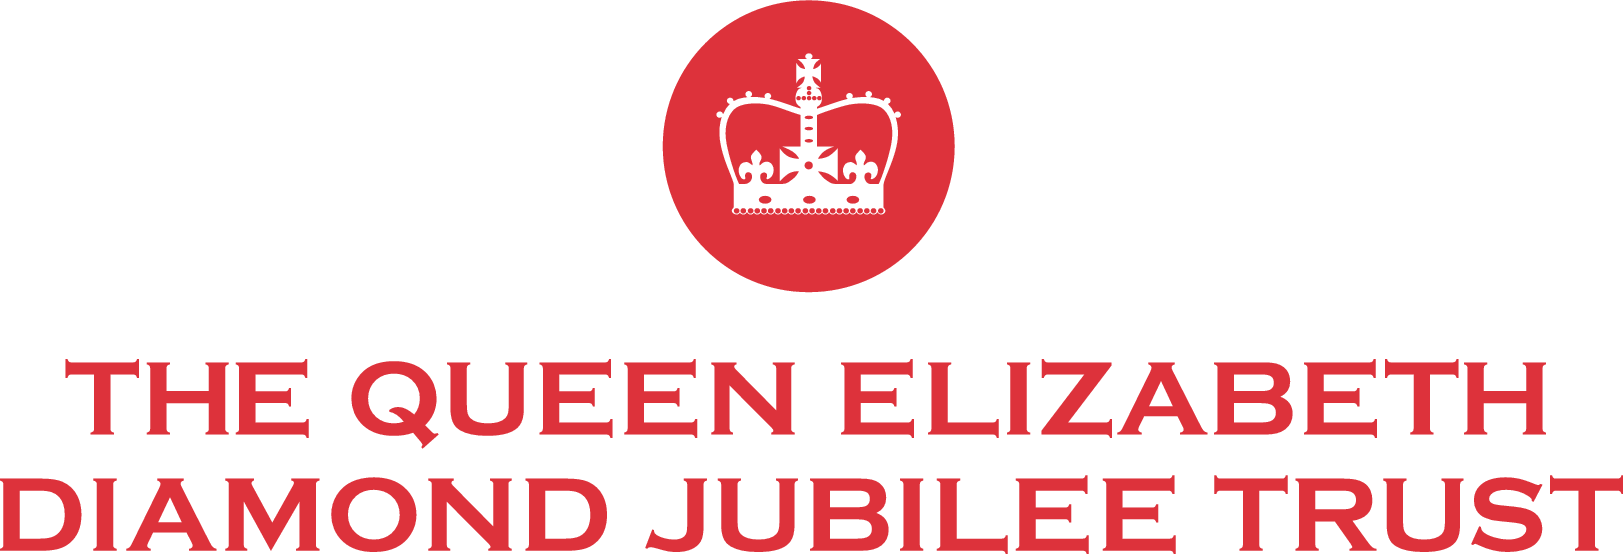 Jubilee-Trust-Logo-Stacked-Red